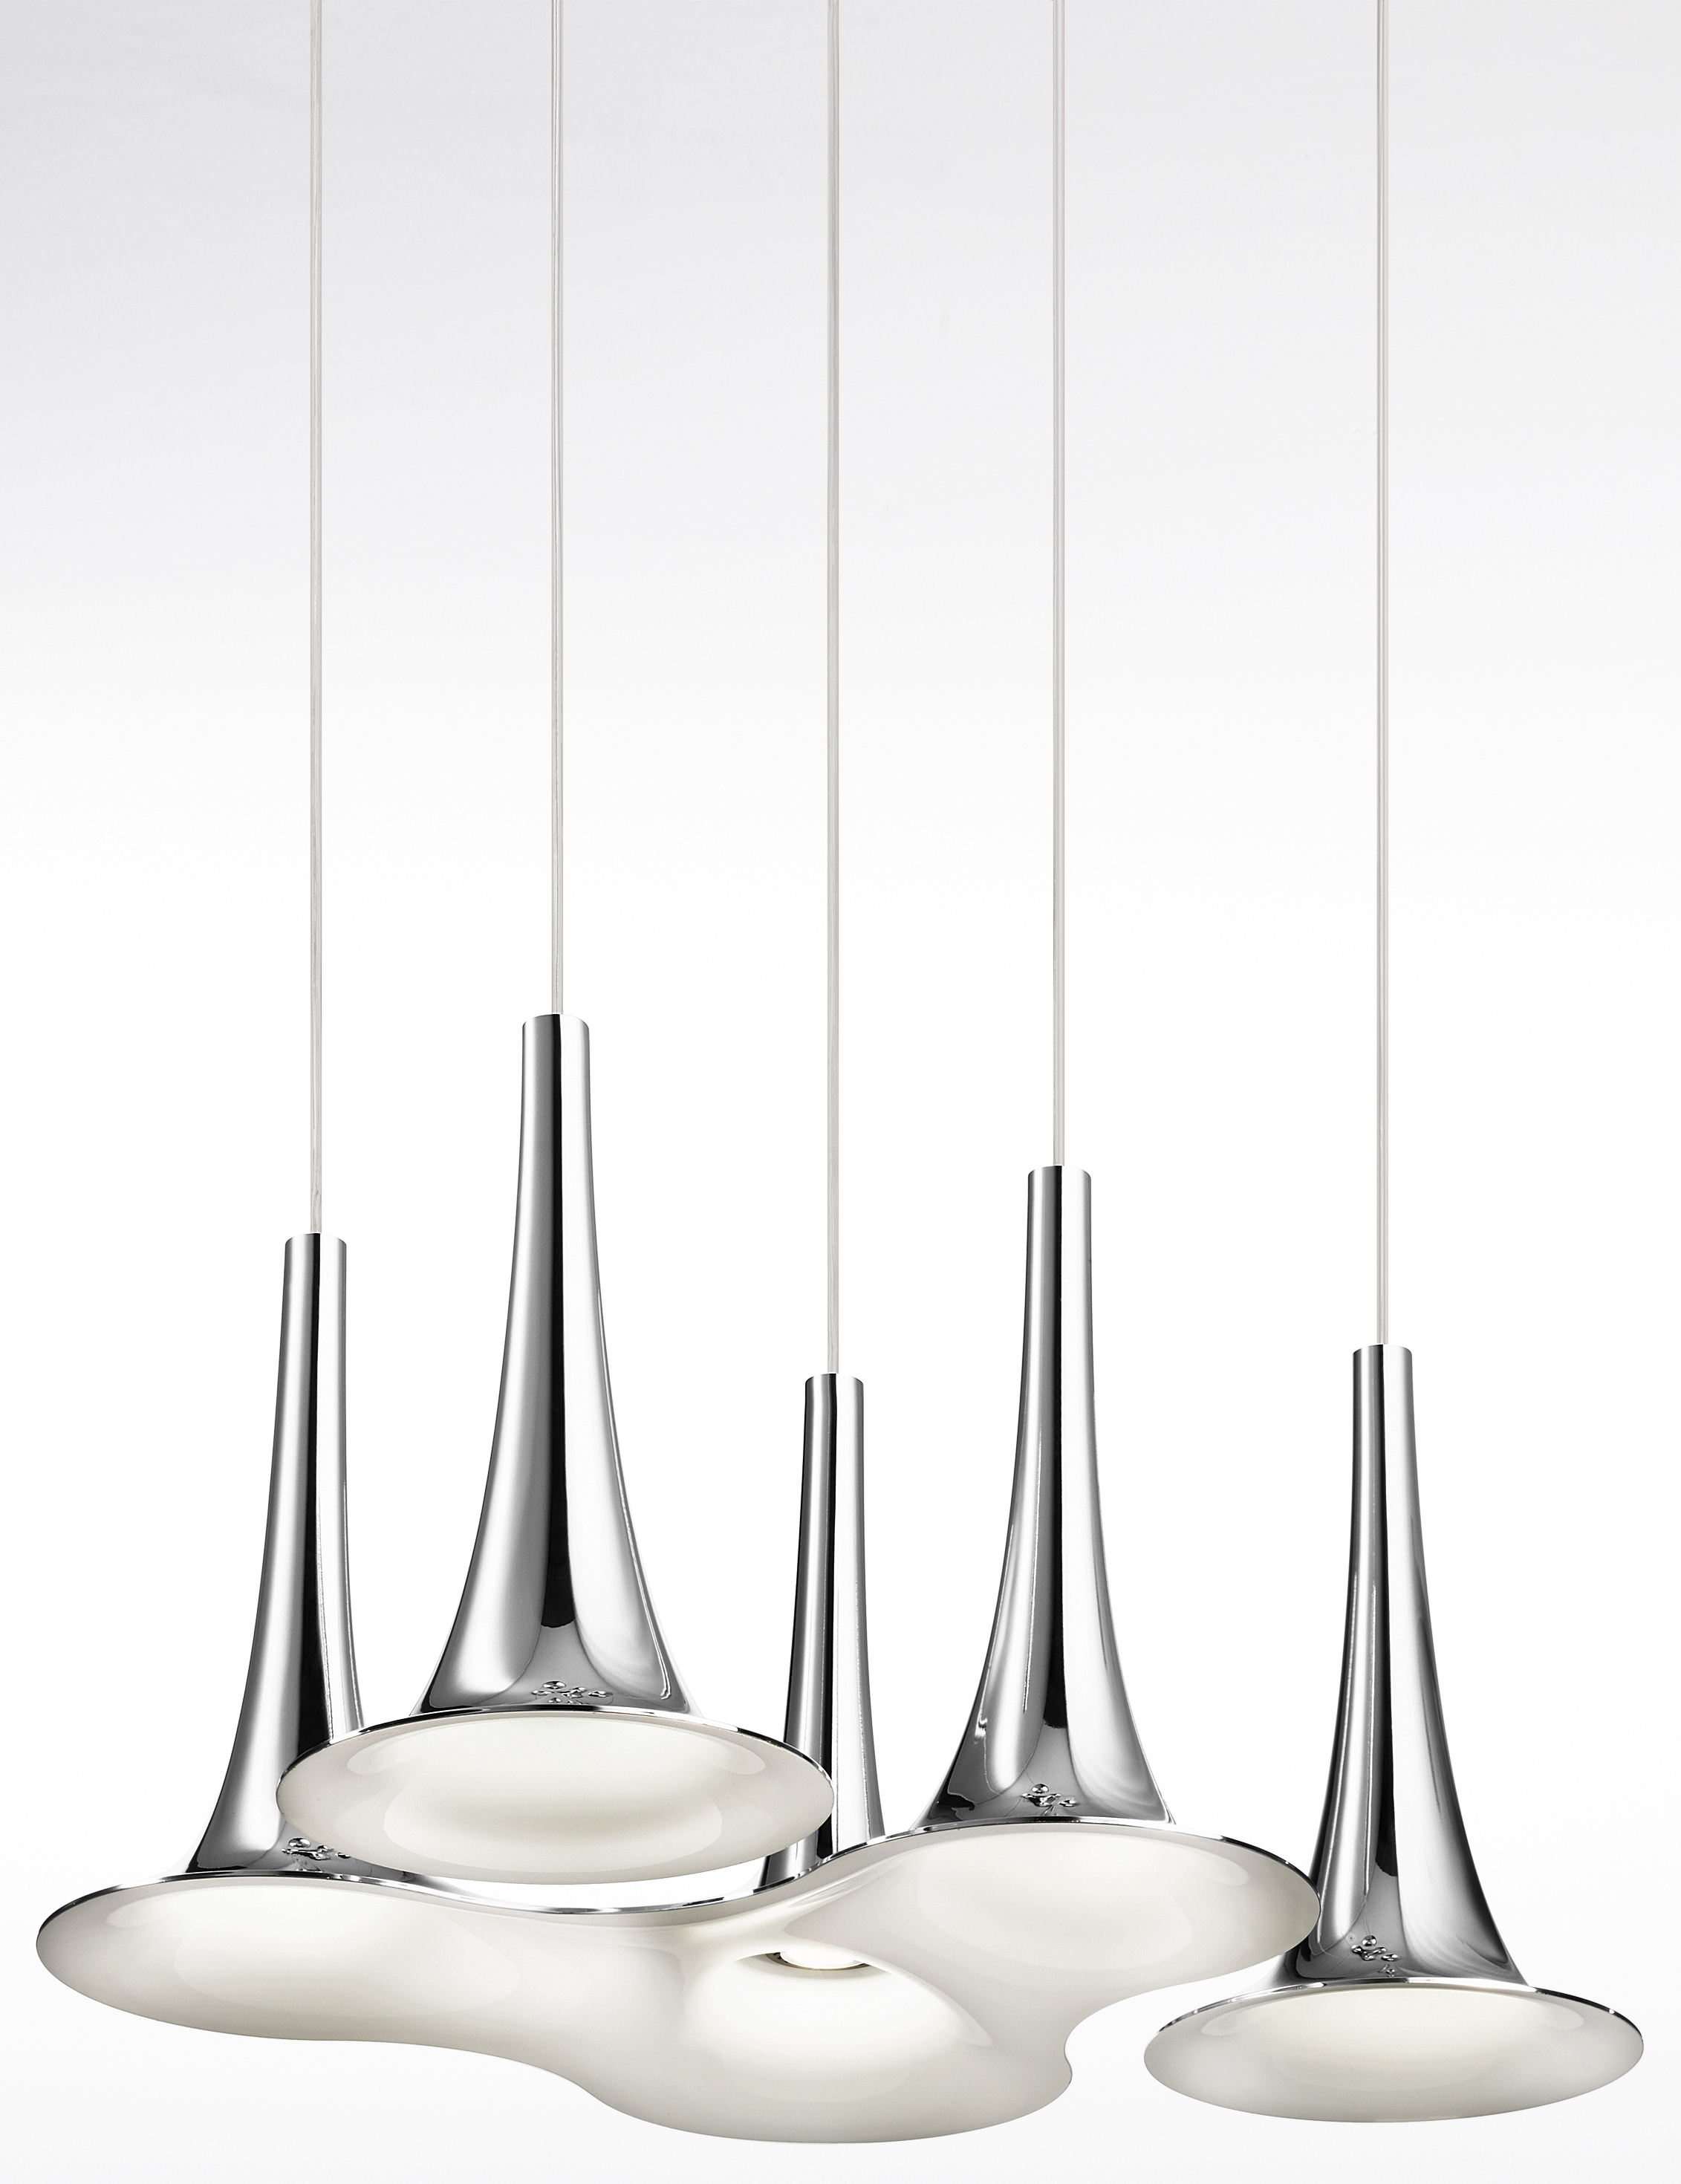 nafir pendants by axo light  lumenscom - original resolution